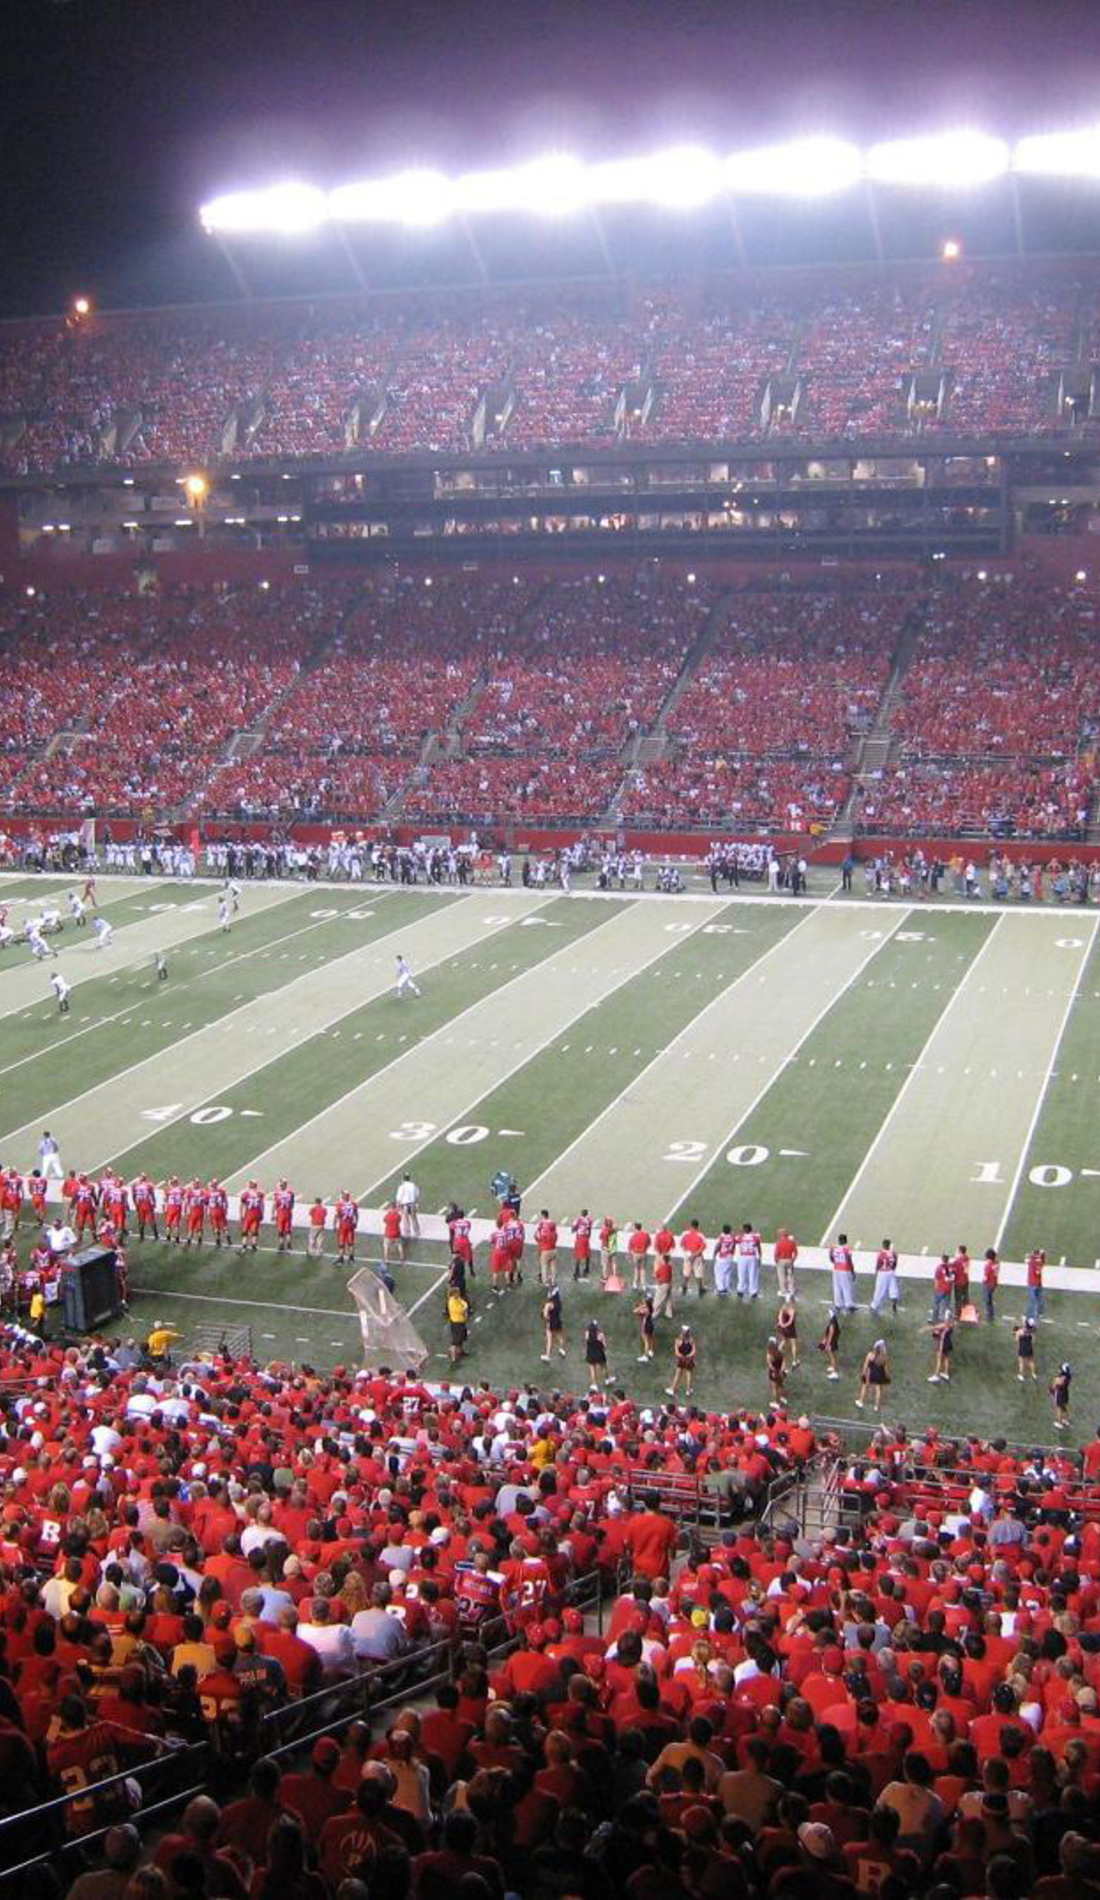 A Rutgers Scarlet Knights Football live event